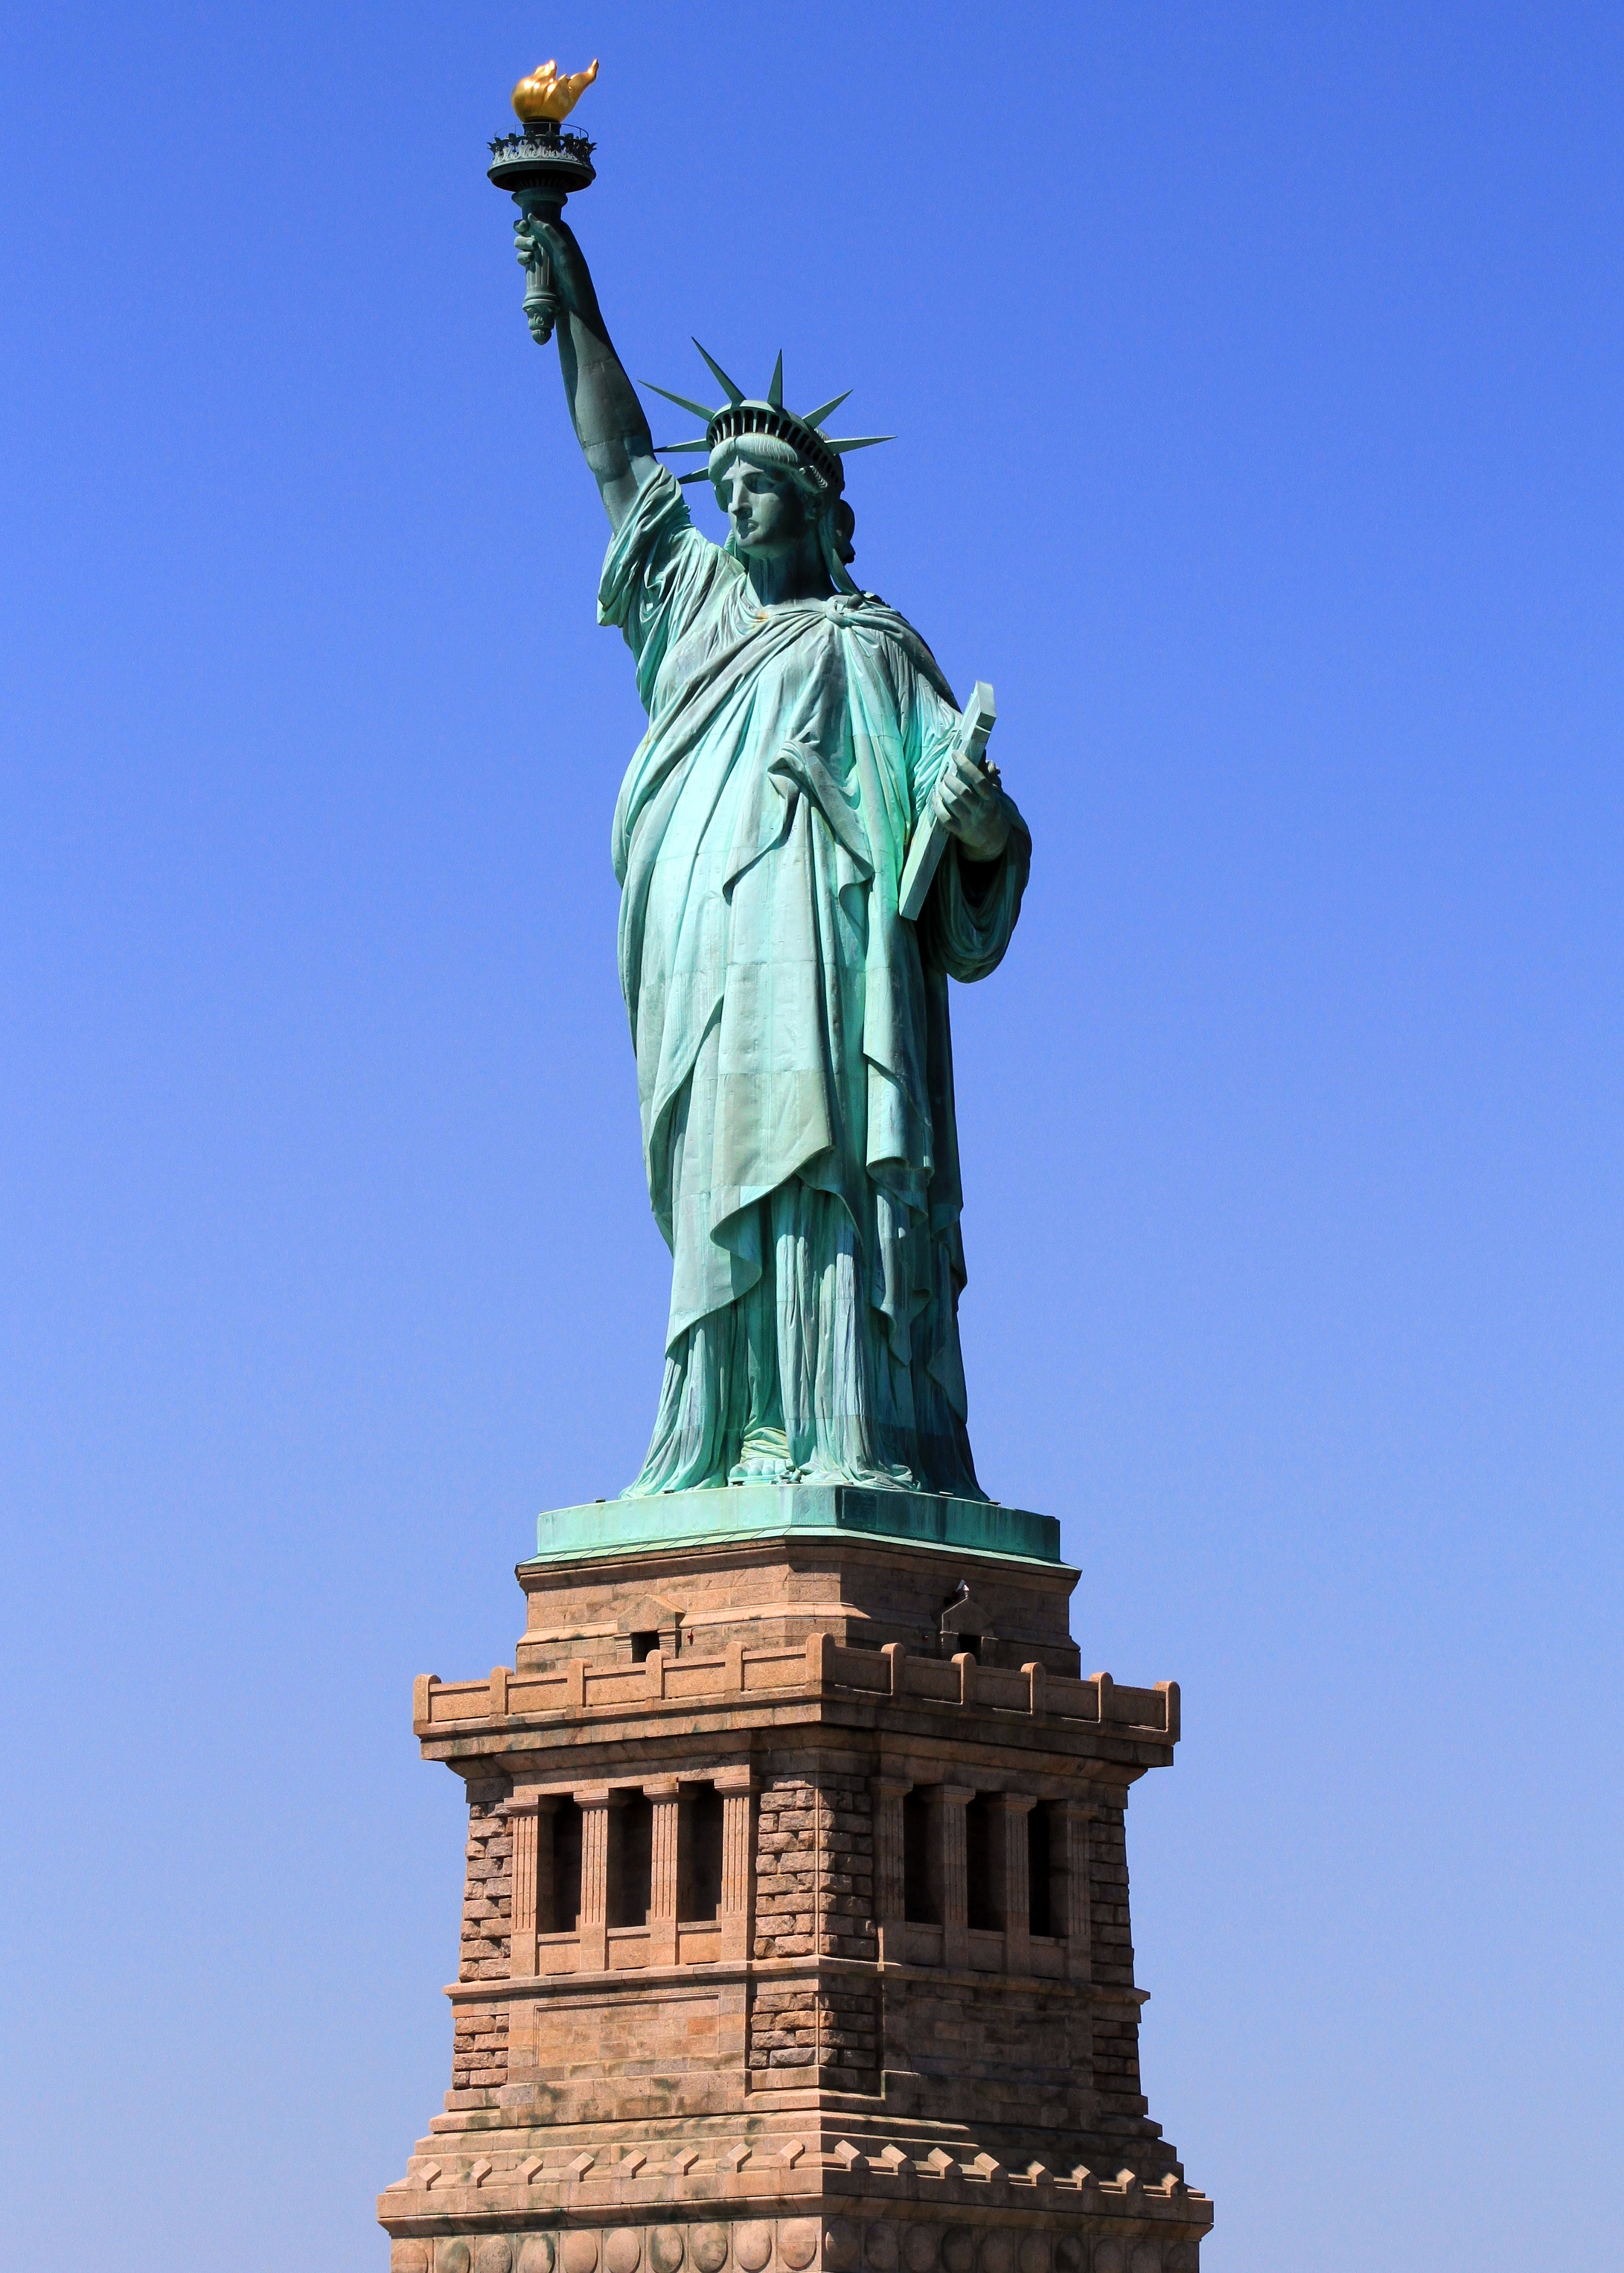 """""""Give me your tired, your poor, your huddled masses yearning to breathe free, the wretched refuse of your teeming shore. Send these, the homeless, tempest-tossed to me. I lift my lamp beside the golden door."""" (Inscription on base of the Statue of Liberty)"""